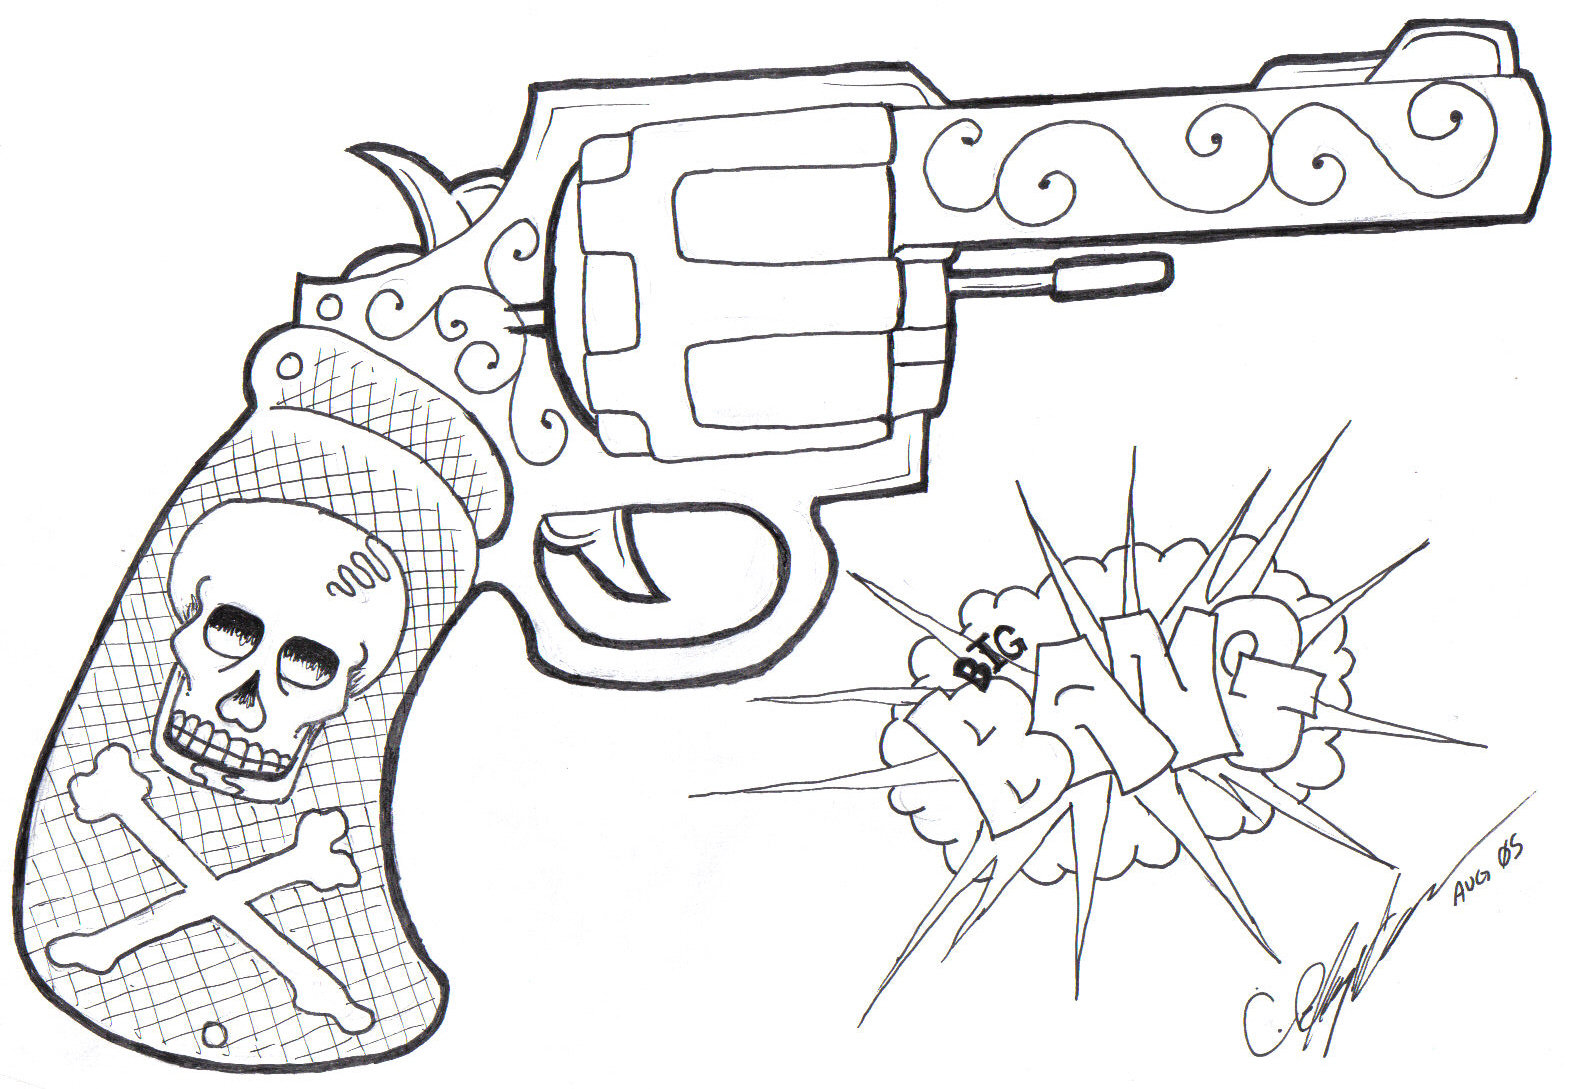 Tattoo Gun Drawing At Getdrawings